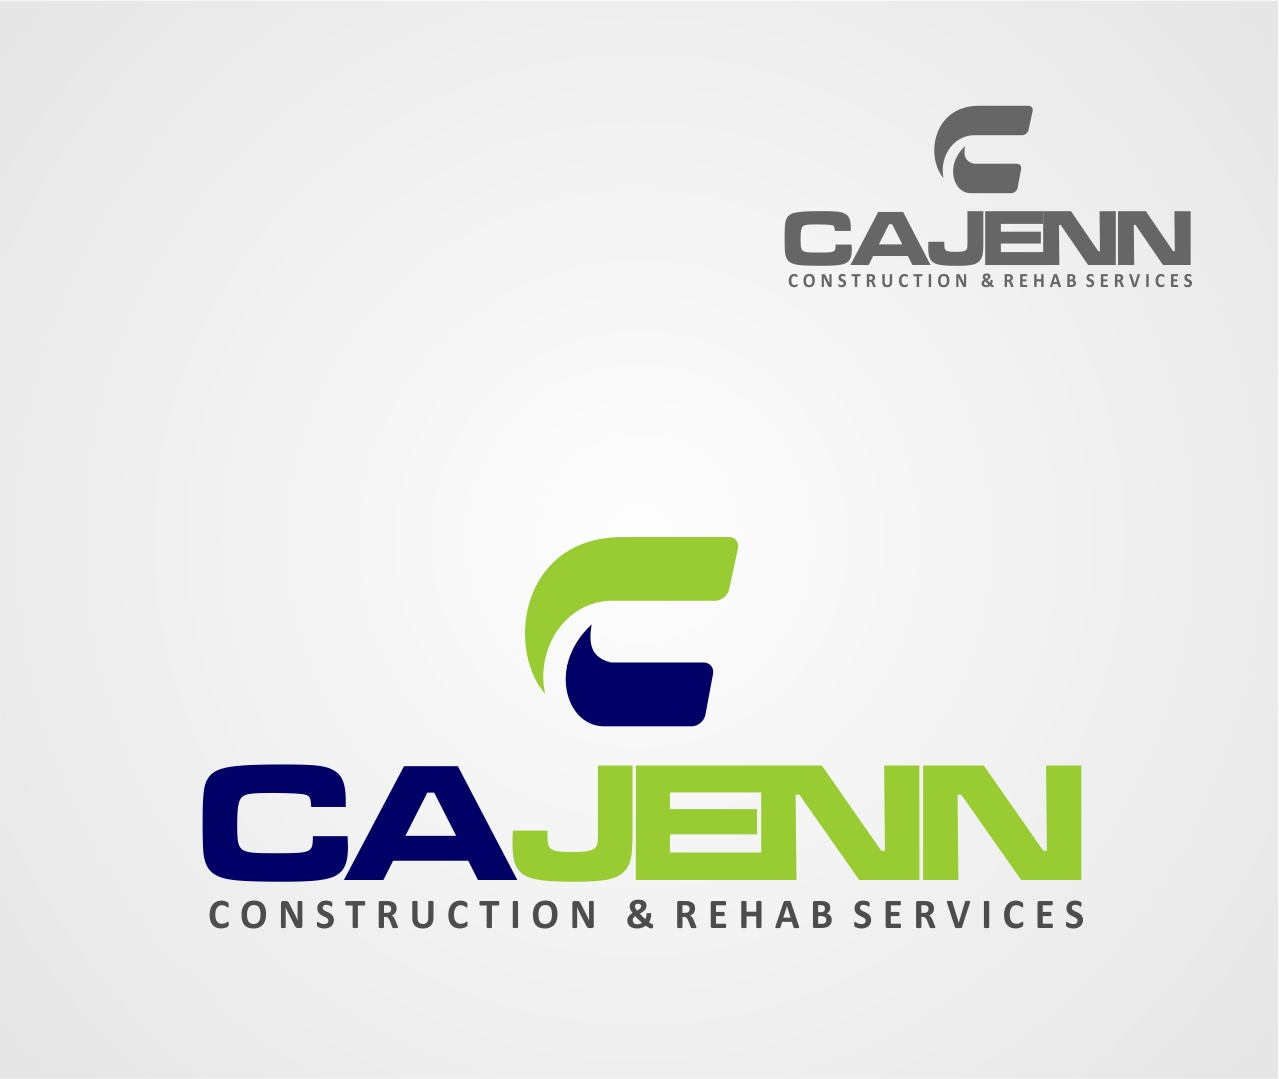 Logo Design by Reivan Ferdinan - Entry No. 319 in the Logo Design Contest New Logo Design for CaJenn Construction & Rehab Services.